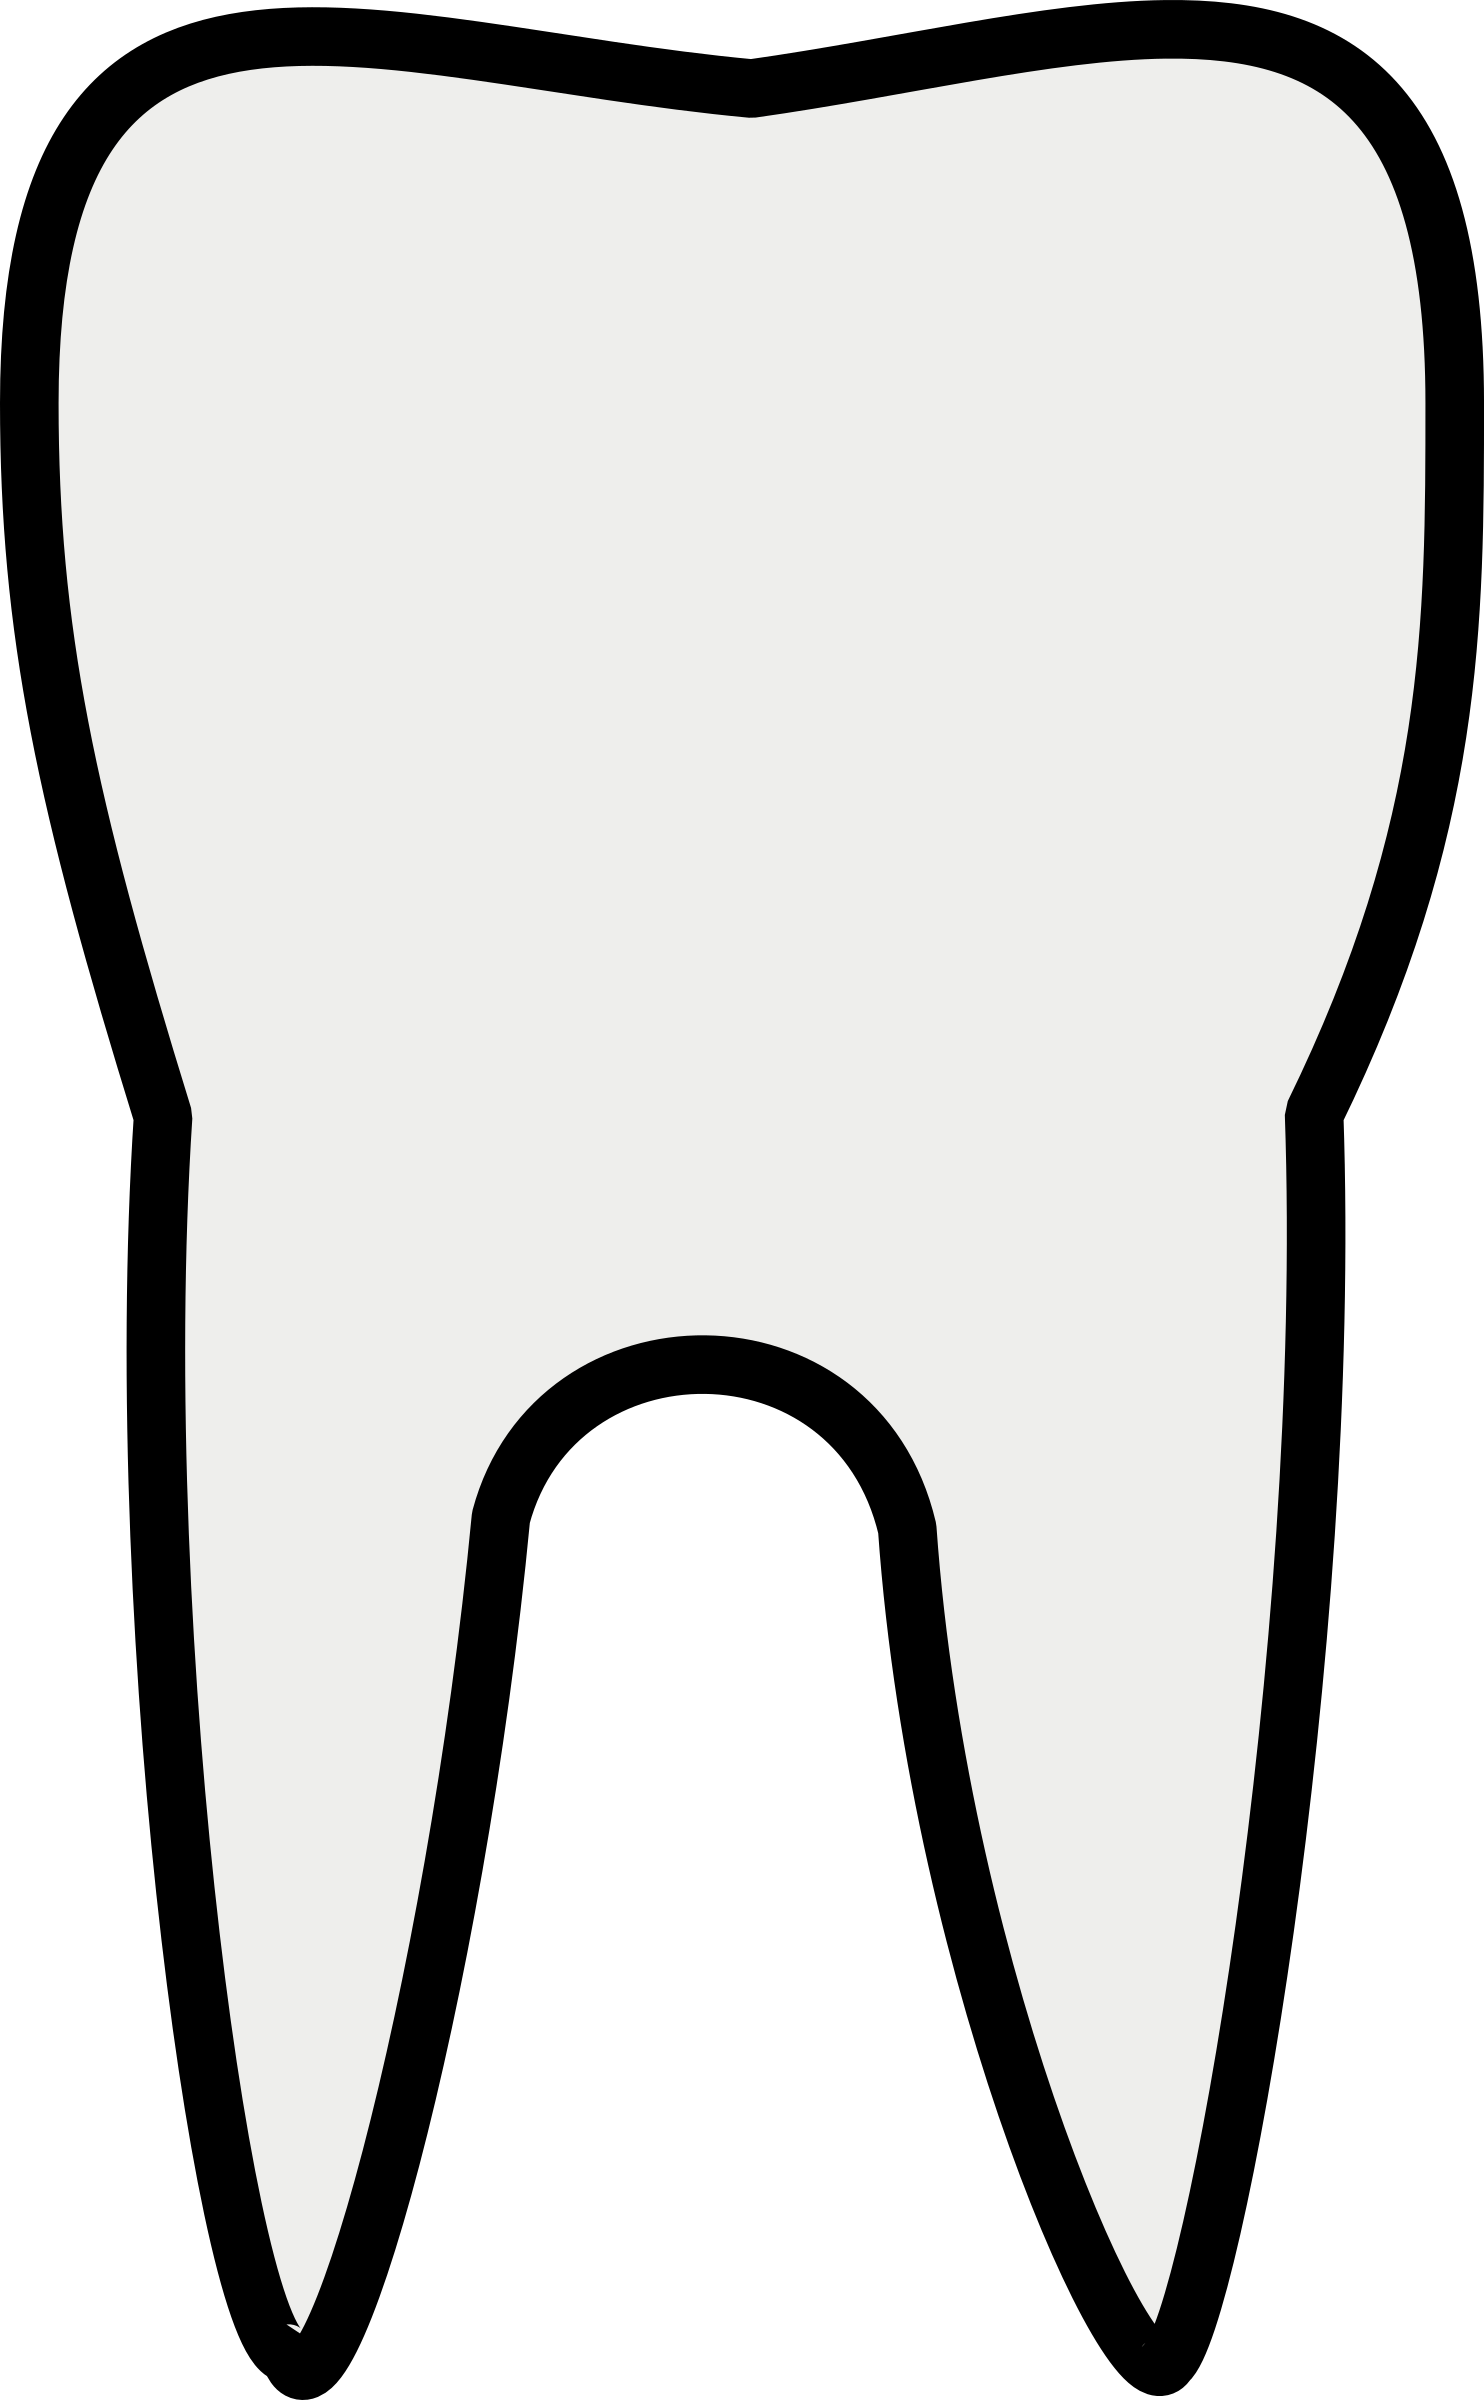 https://openclipart.org/image/2400px/svg_to_png/76639/tooth-line-art-rg1024-tooth.png